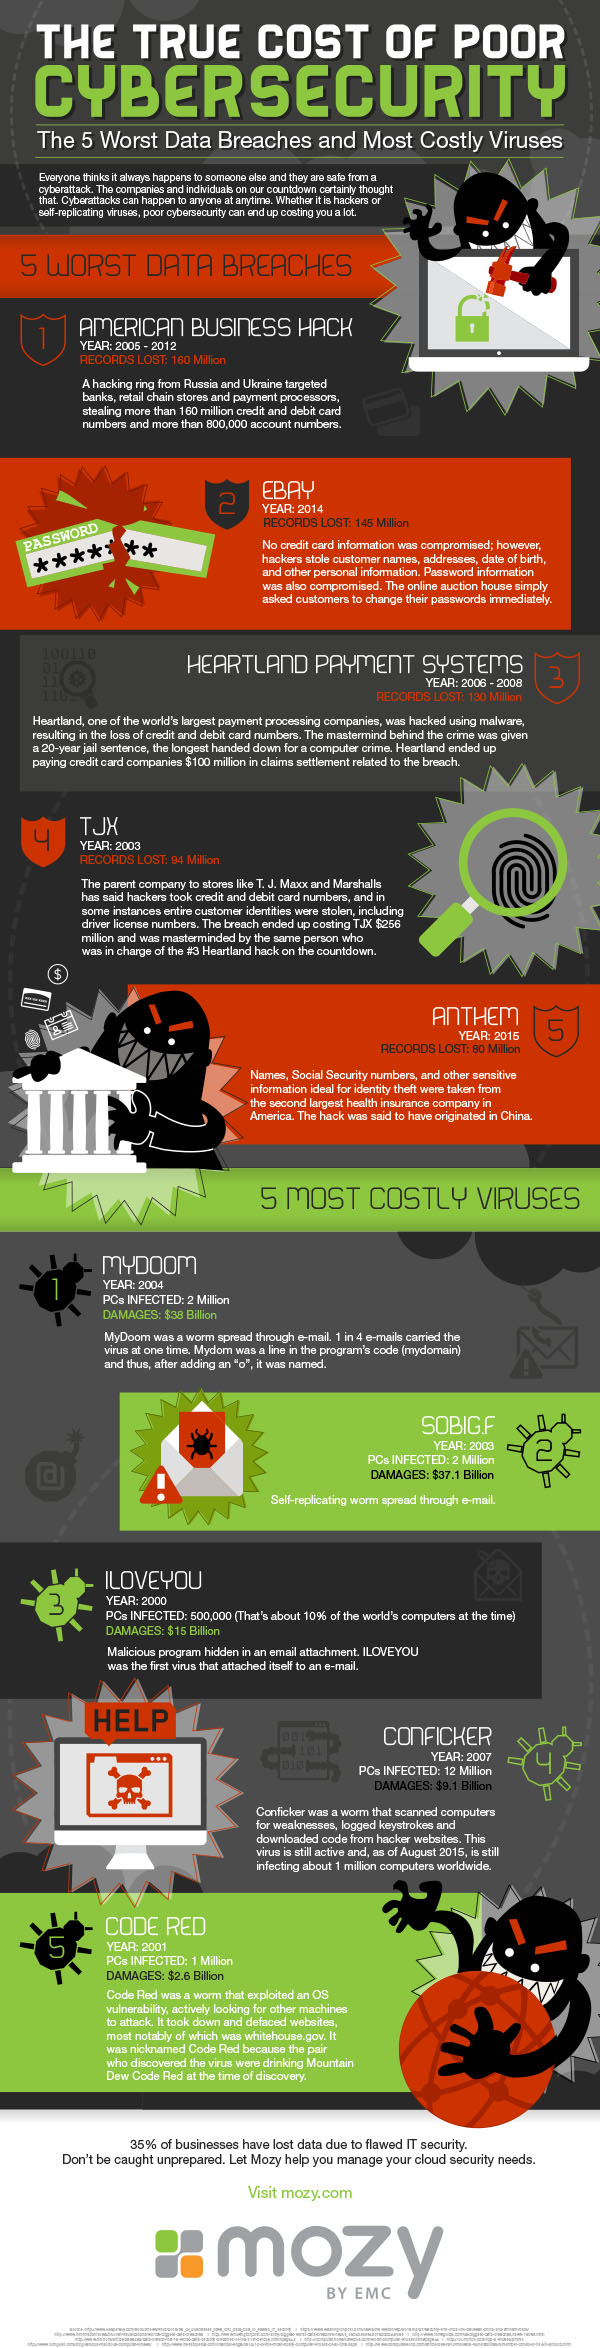 Cybersecurity infographic by Mozy